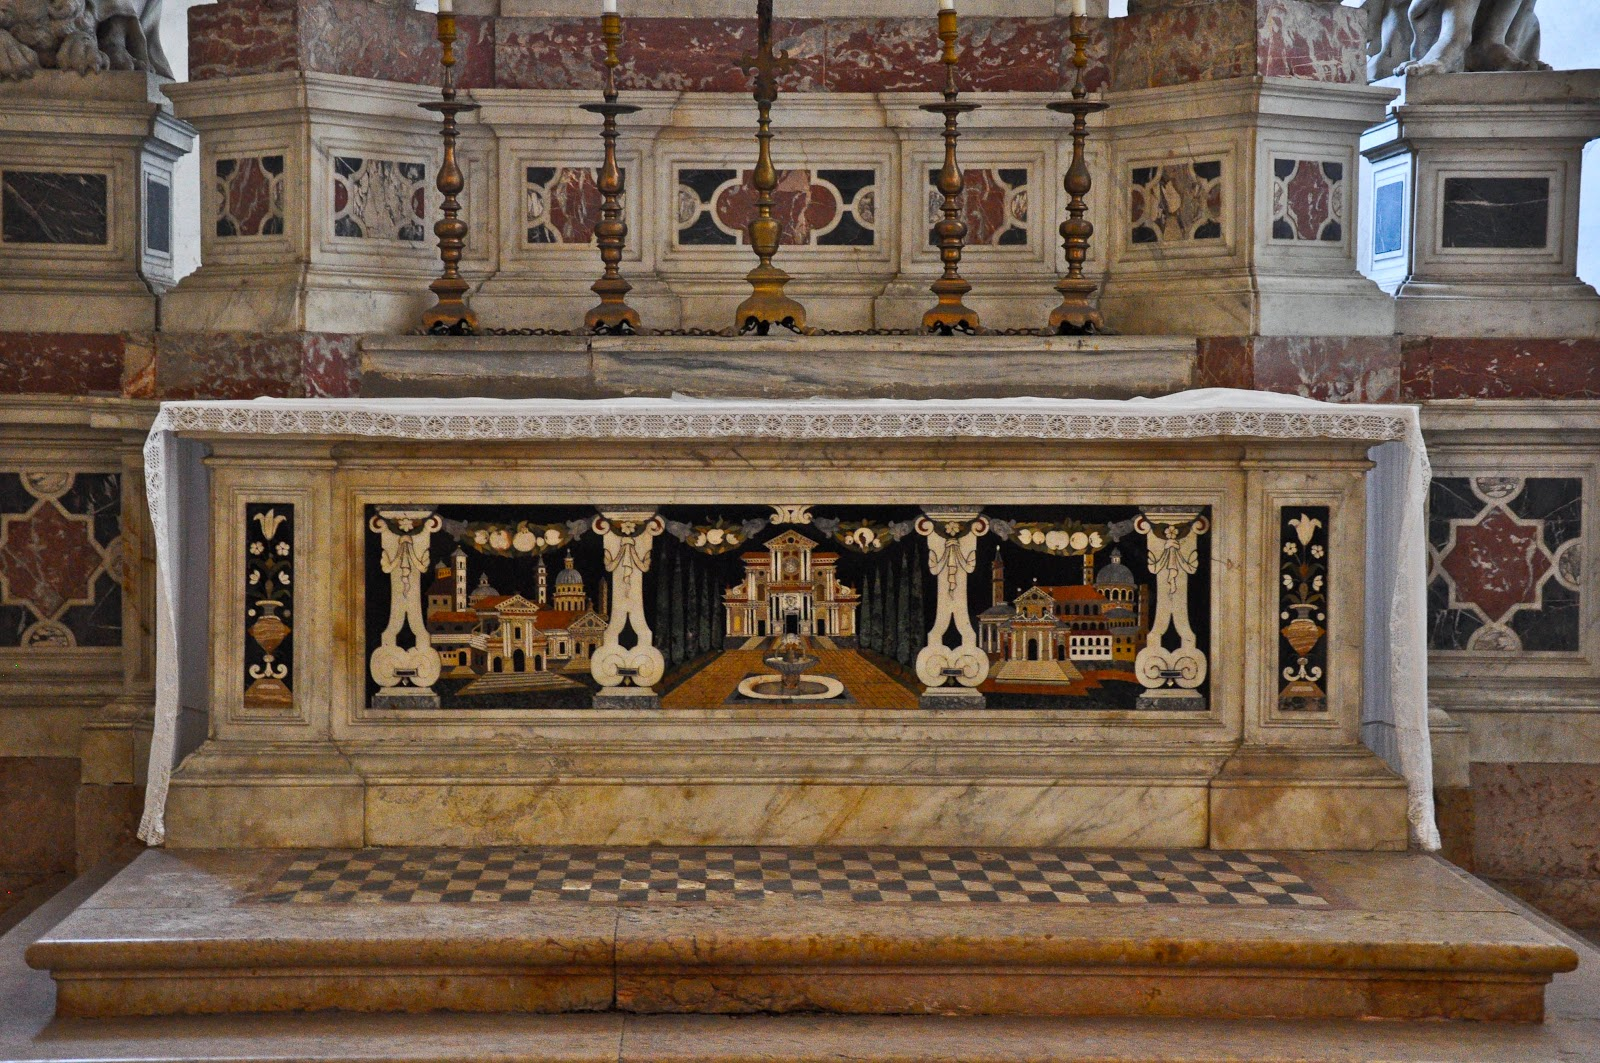 A fine example of 'pietra dura' in the Basilica of Santa Giustiniana in Padua, Italy